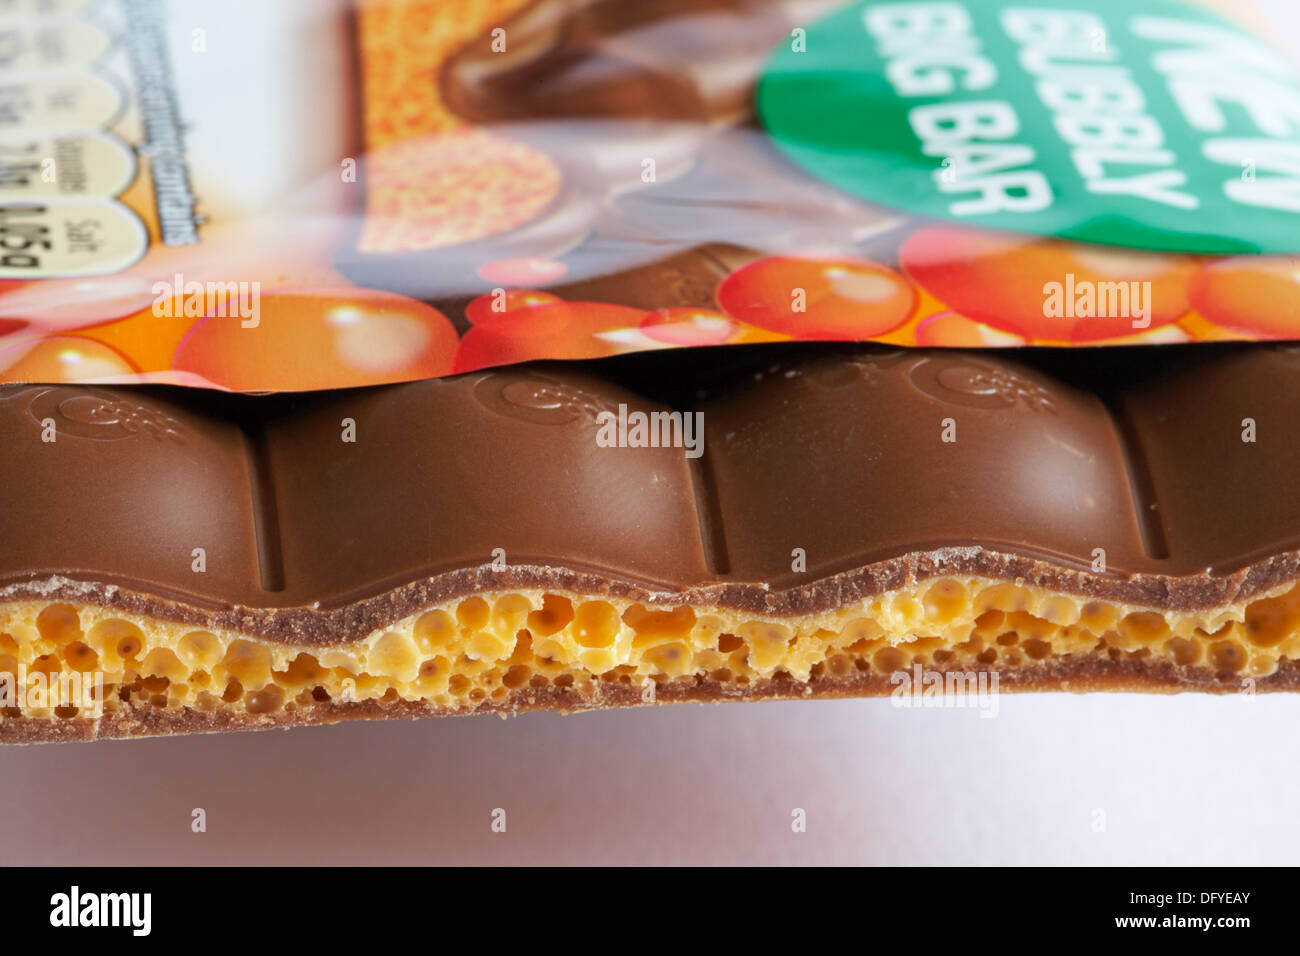 Nestle Orange aero new bubbly big bar of chocolate  with piece broken off to see inside set on white background - Stock Image